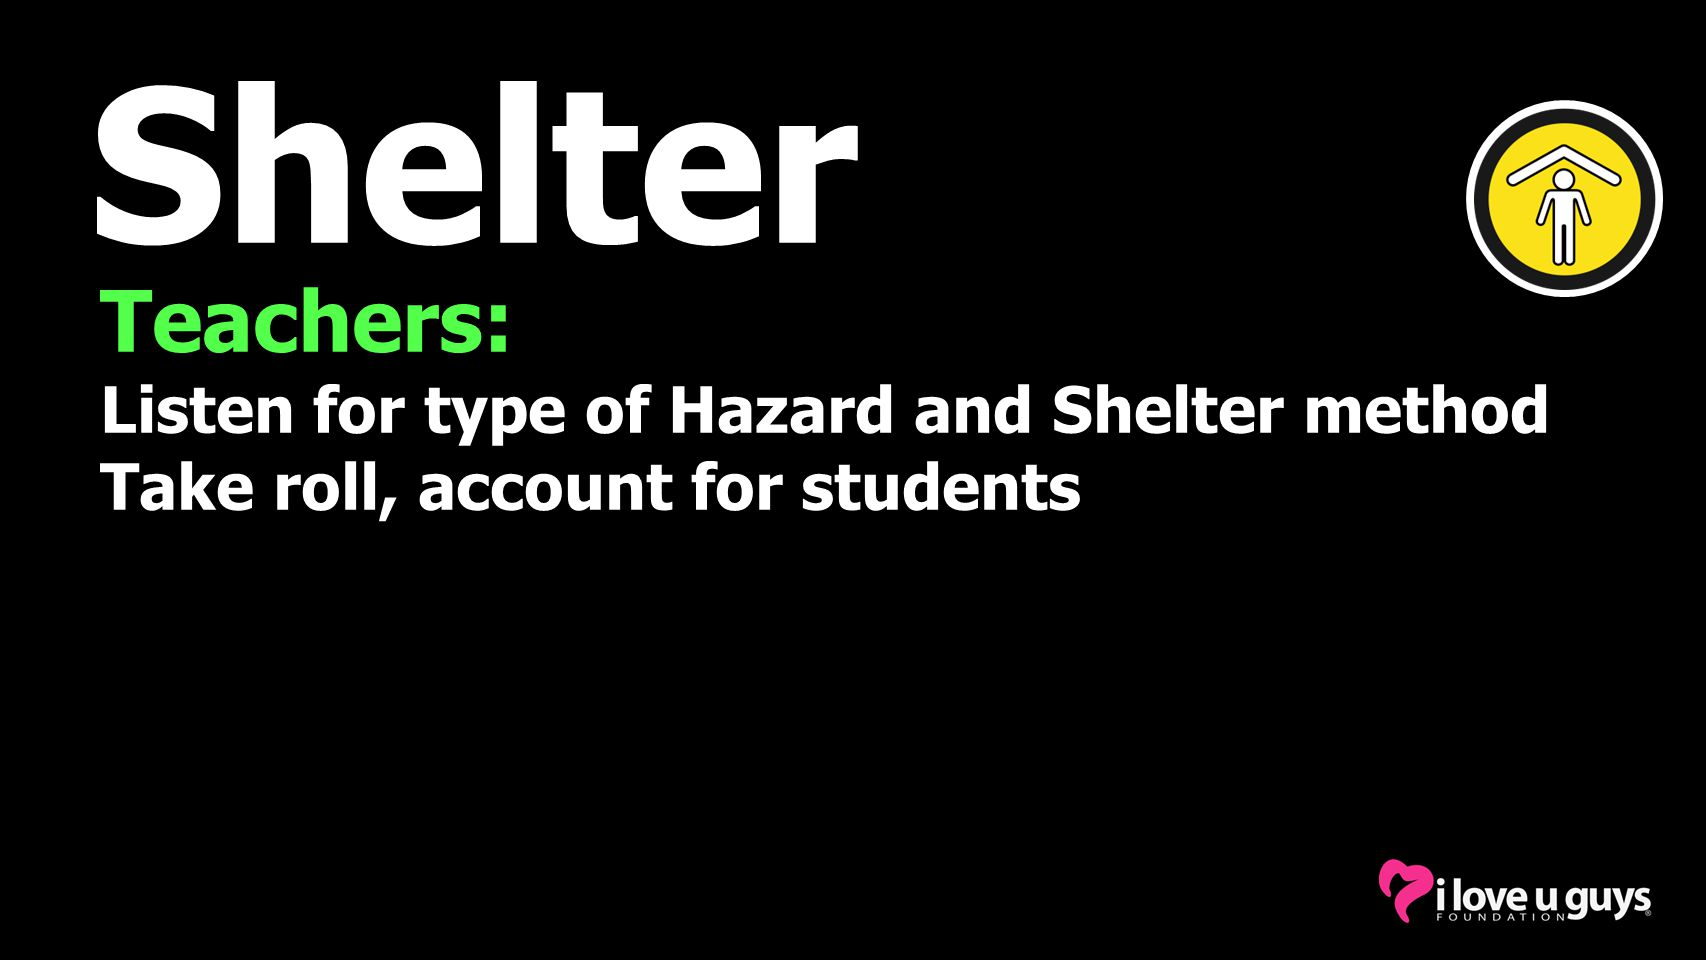 Shelter Teachers: Listen for type of Hazard and Shelter method Take roll, account for students